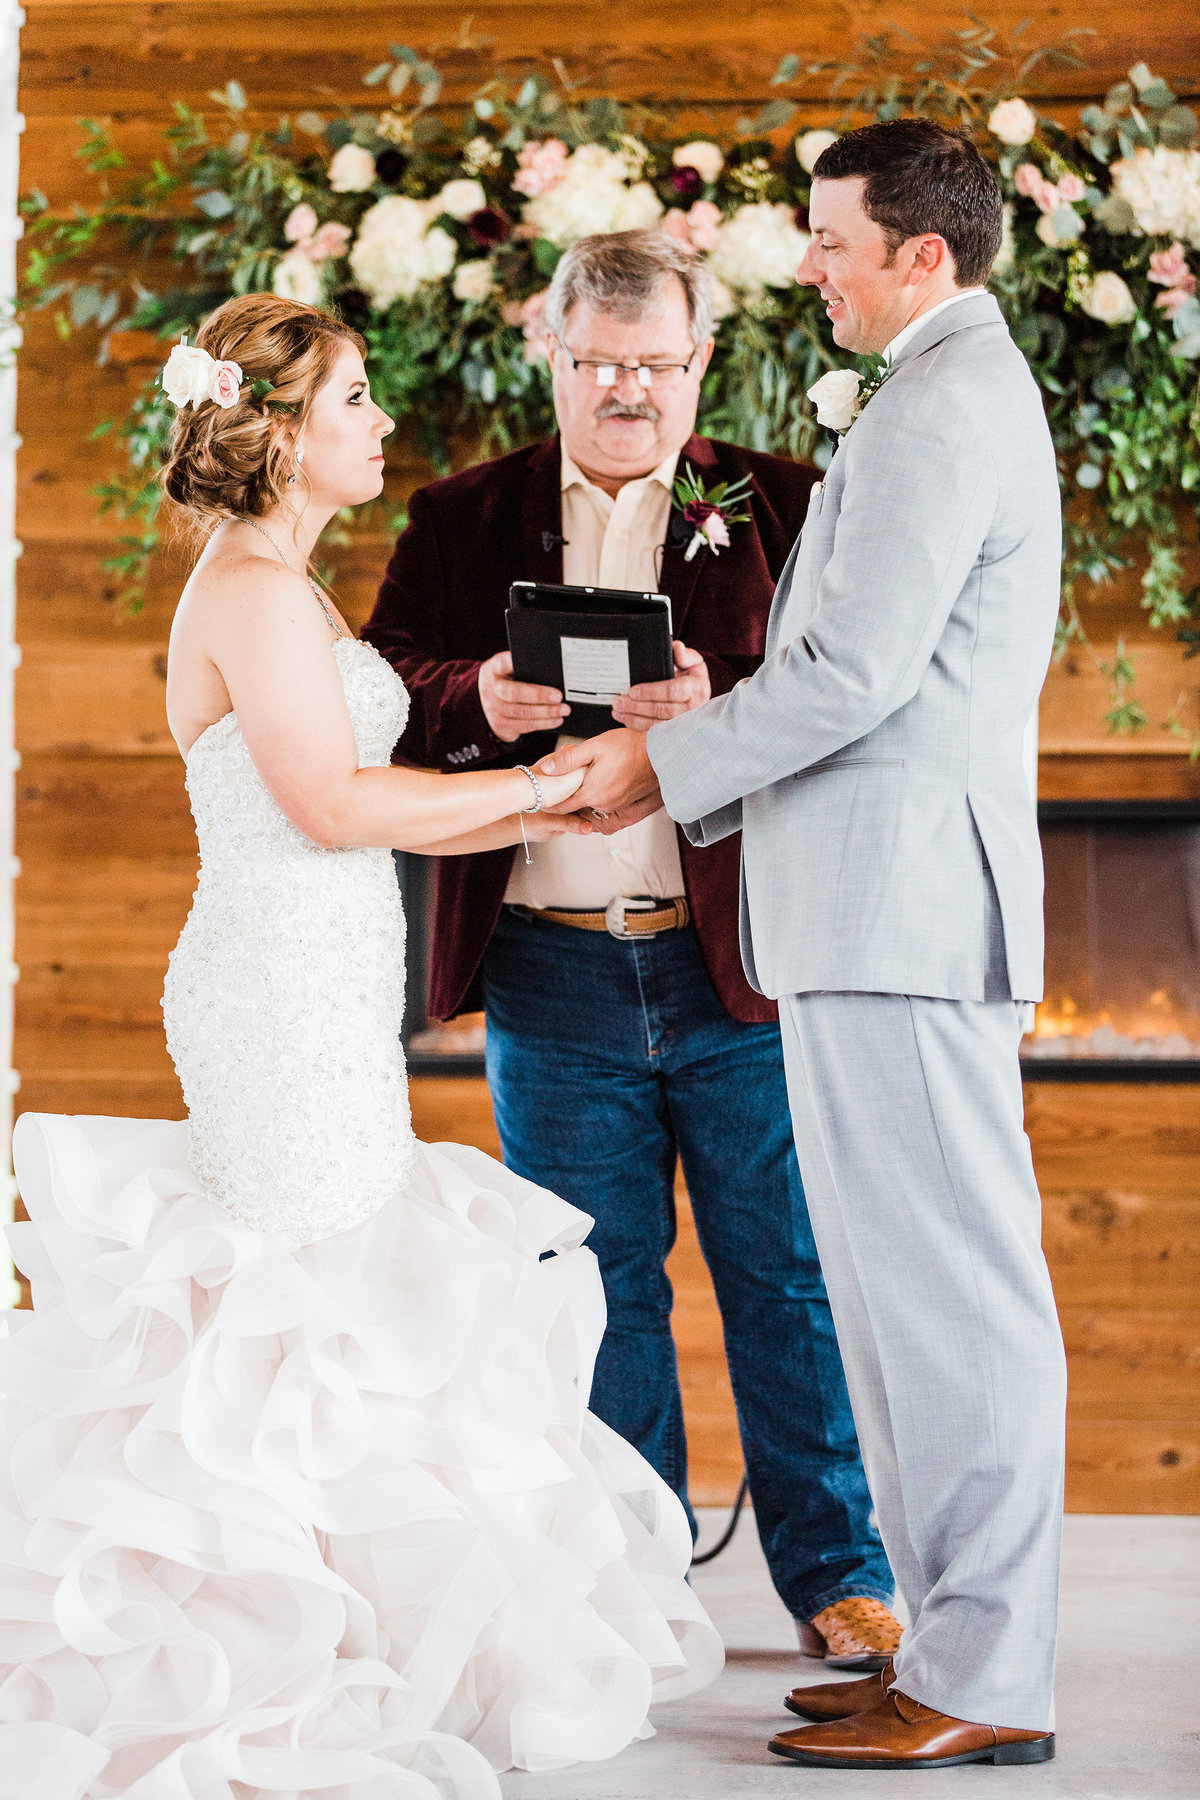 The Milestone Morgan Creek Barn Walters Estates Wedding Ceremony